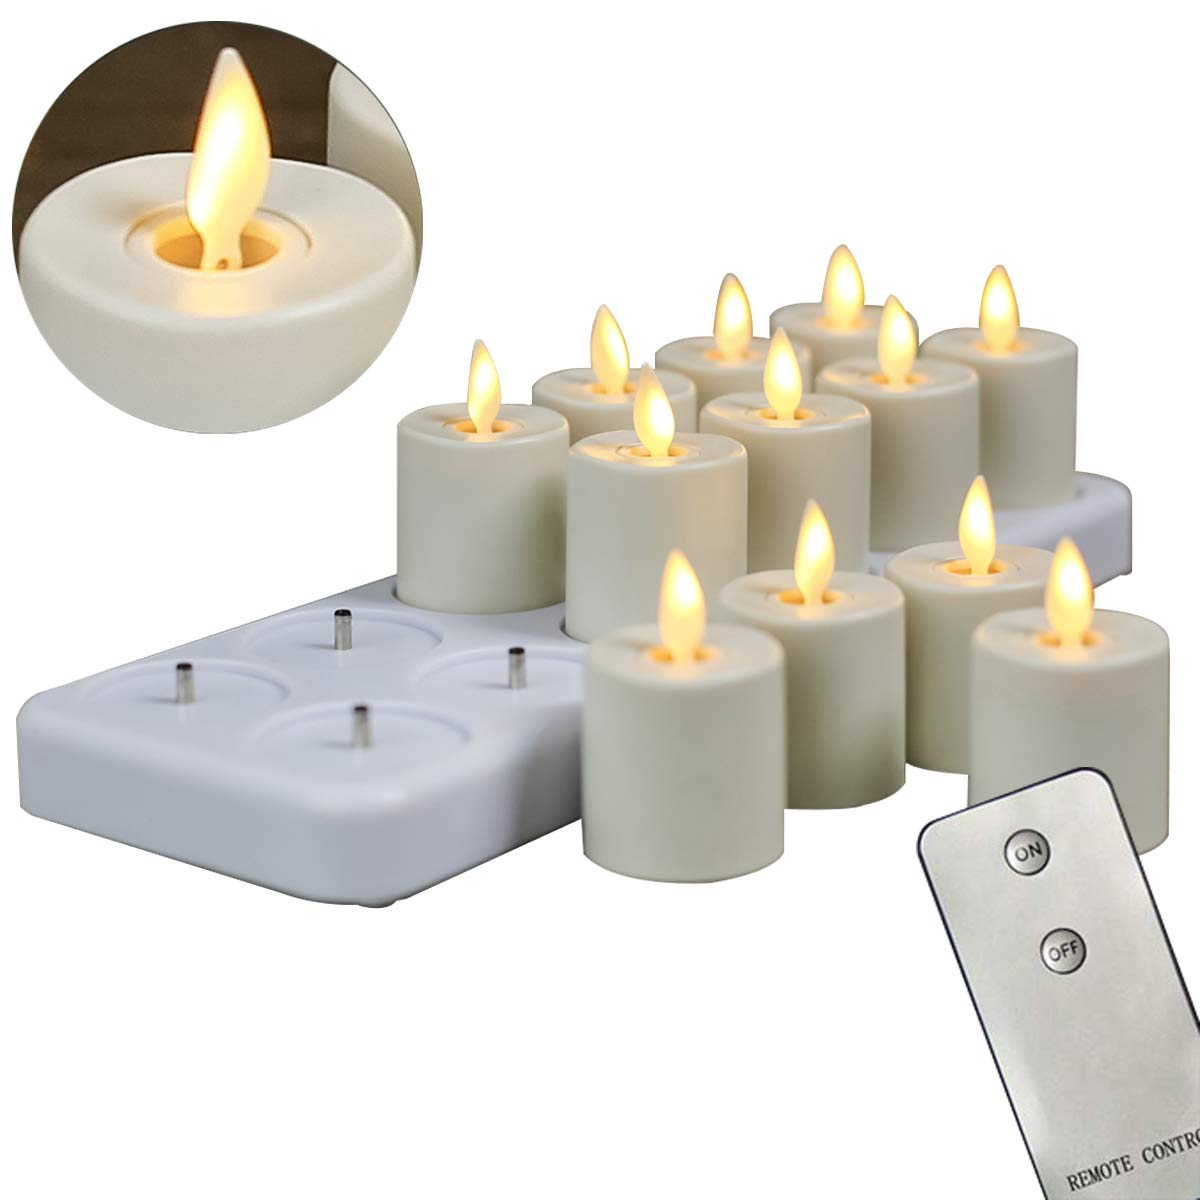 12 Pack Rechargeable Dancing Wick Candles, LED Flameless Remote Flickering Votive Candles With Timer Function(1.5 X 2.4 Inch per Candle) by NONNO&ZGF